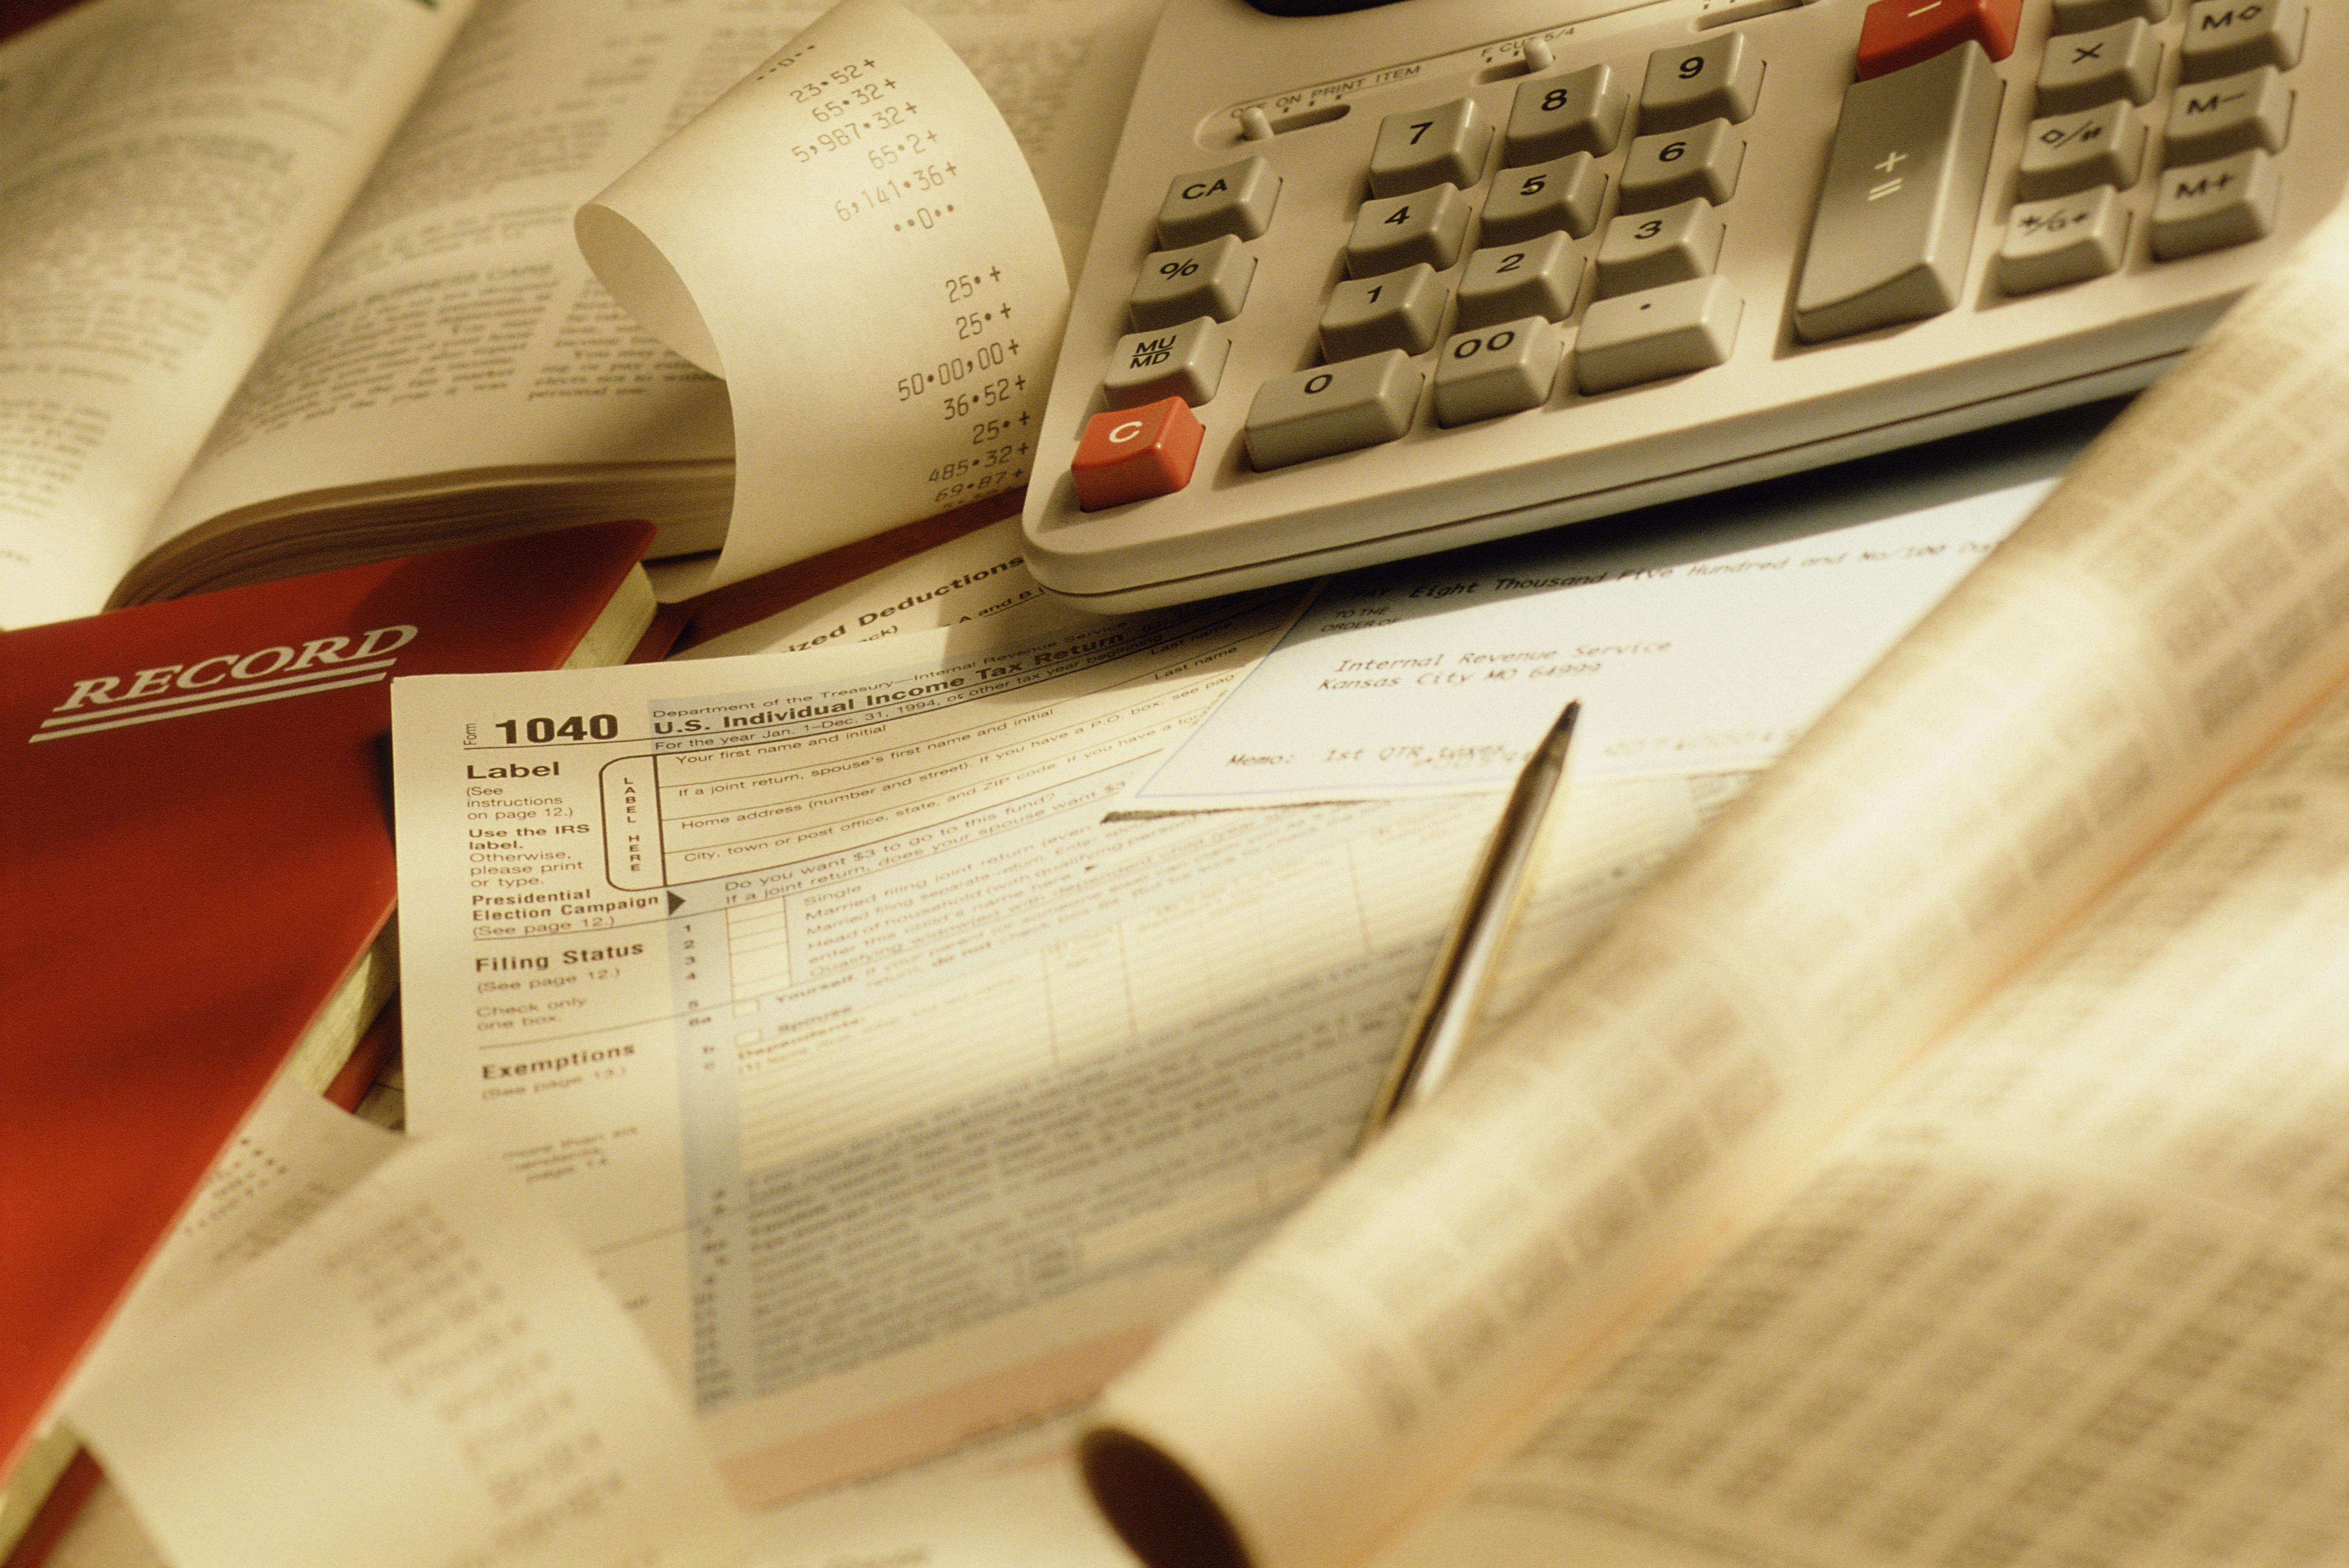 Tax forms and calculator